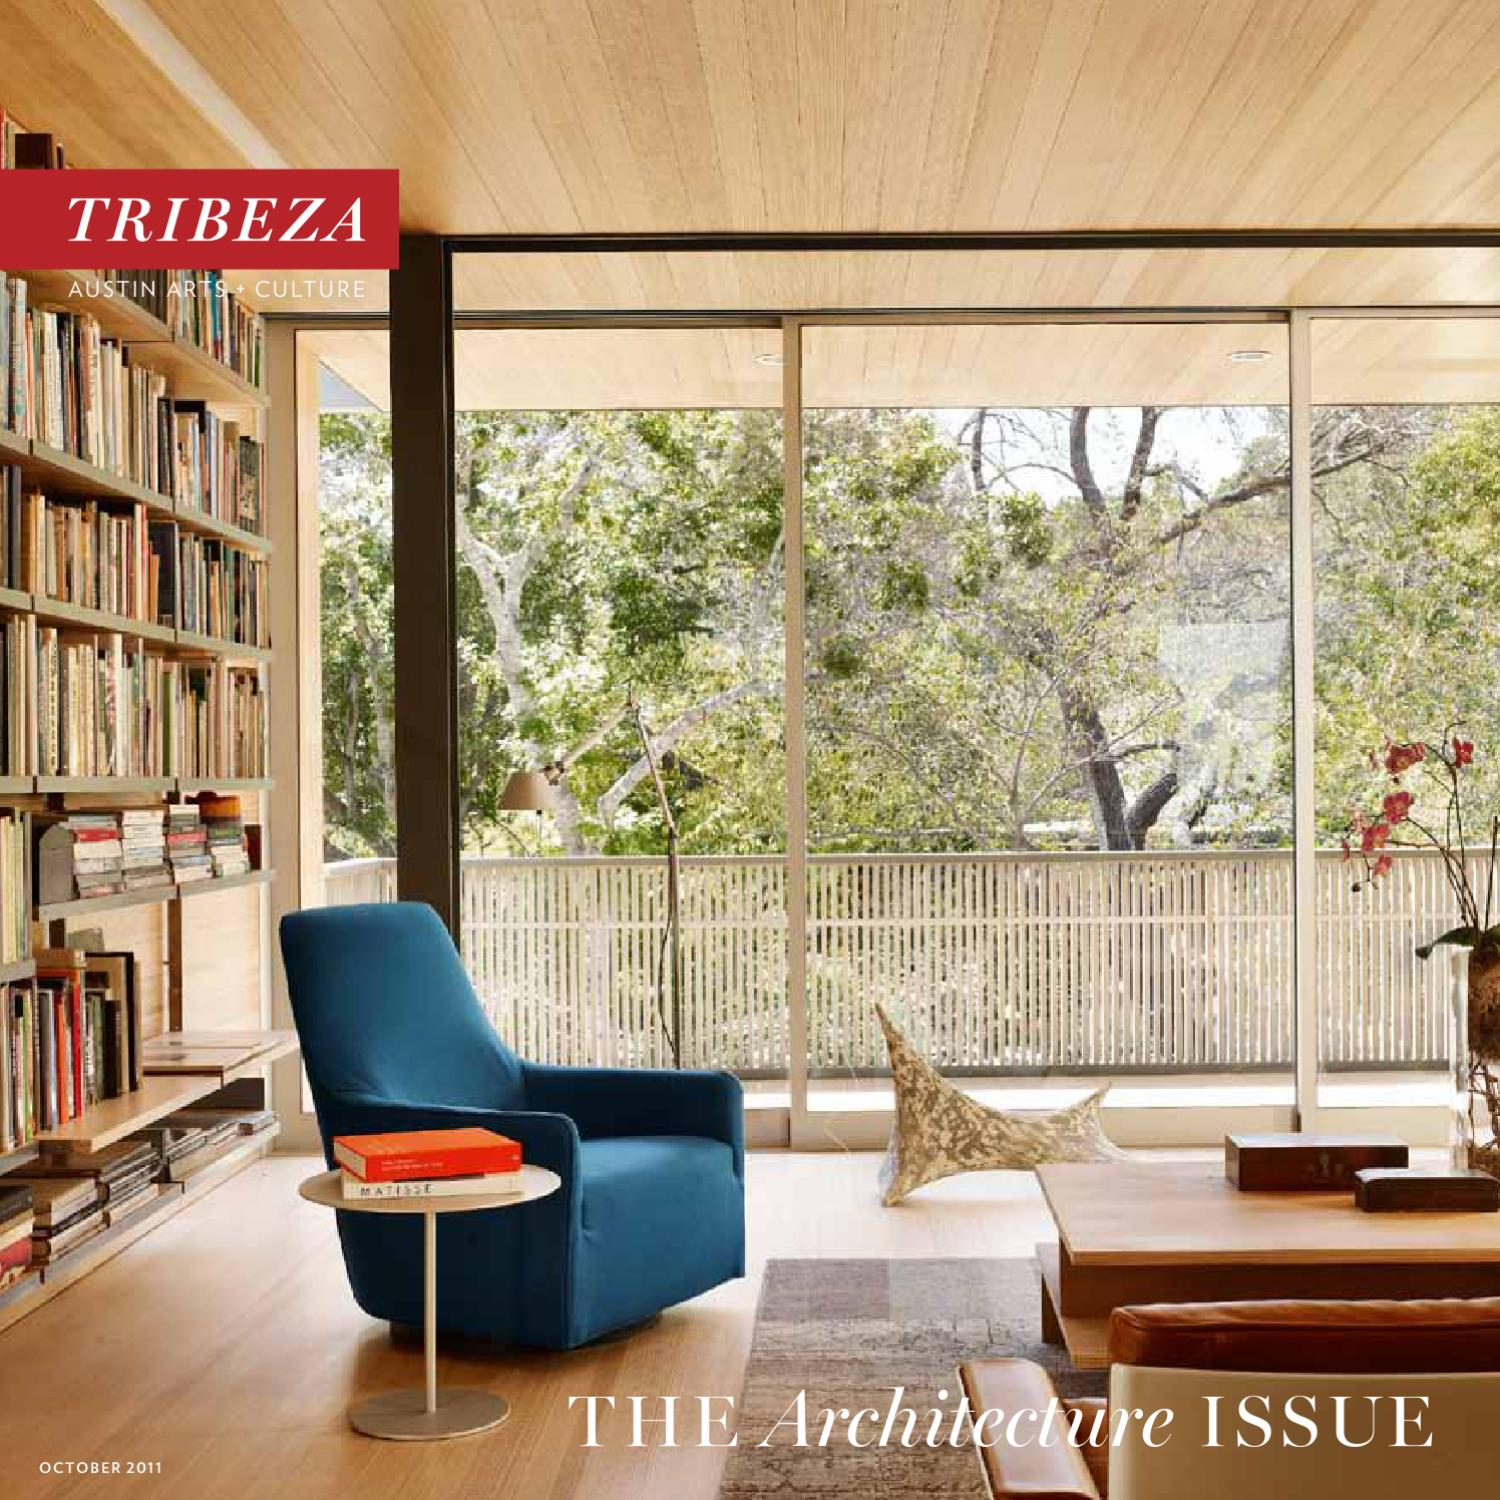 TRIBEZA October 2011 By TRIBEZA Austin Curated   Issuu